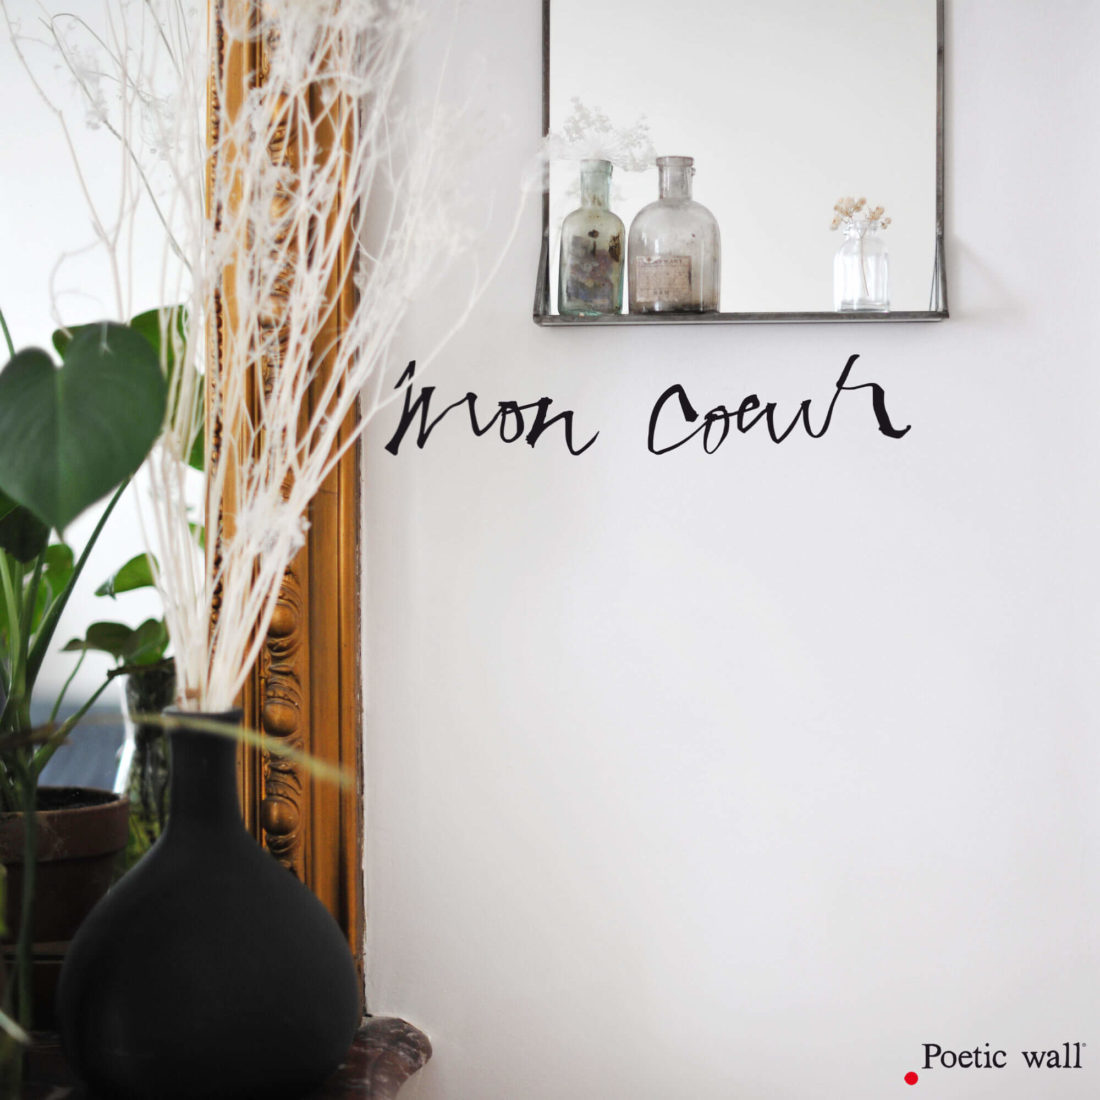 Sticker texte Mon coeur Poetic Wall